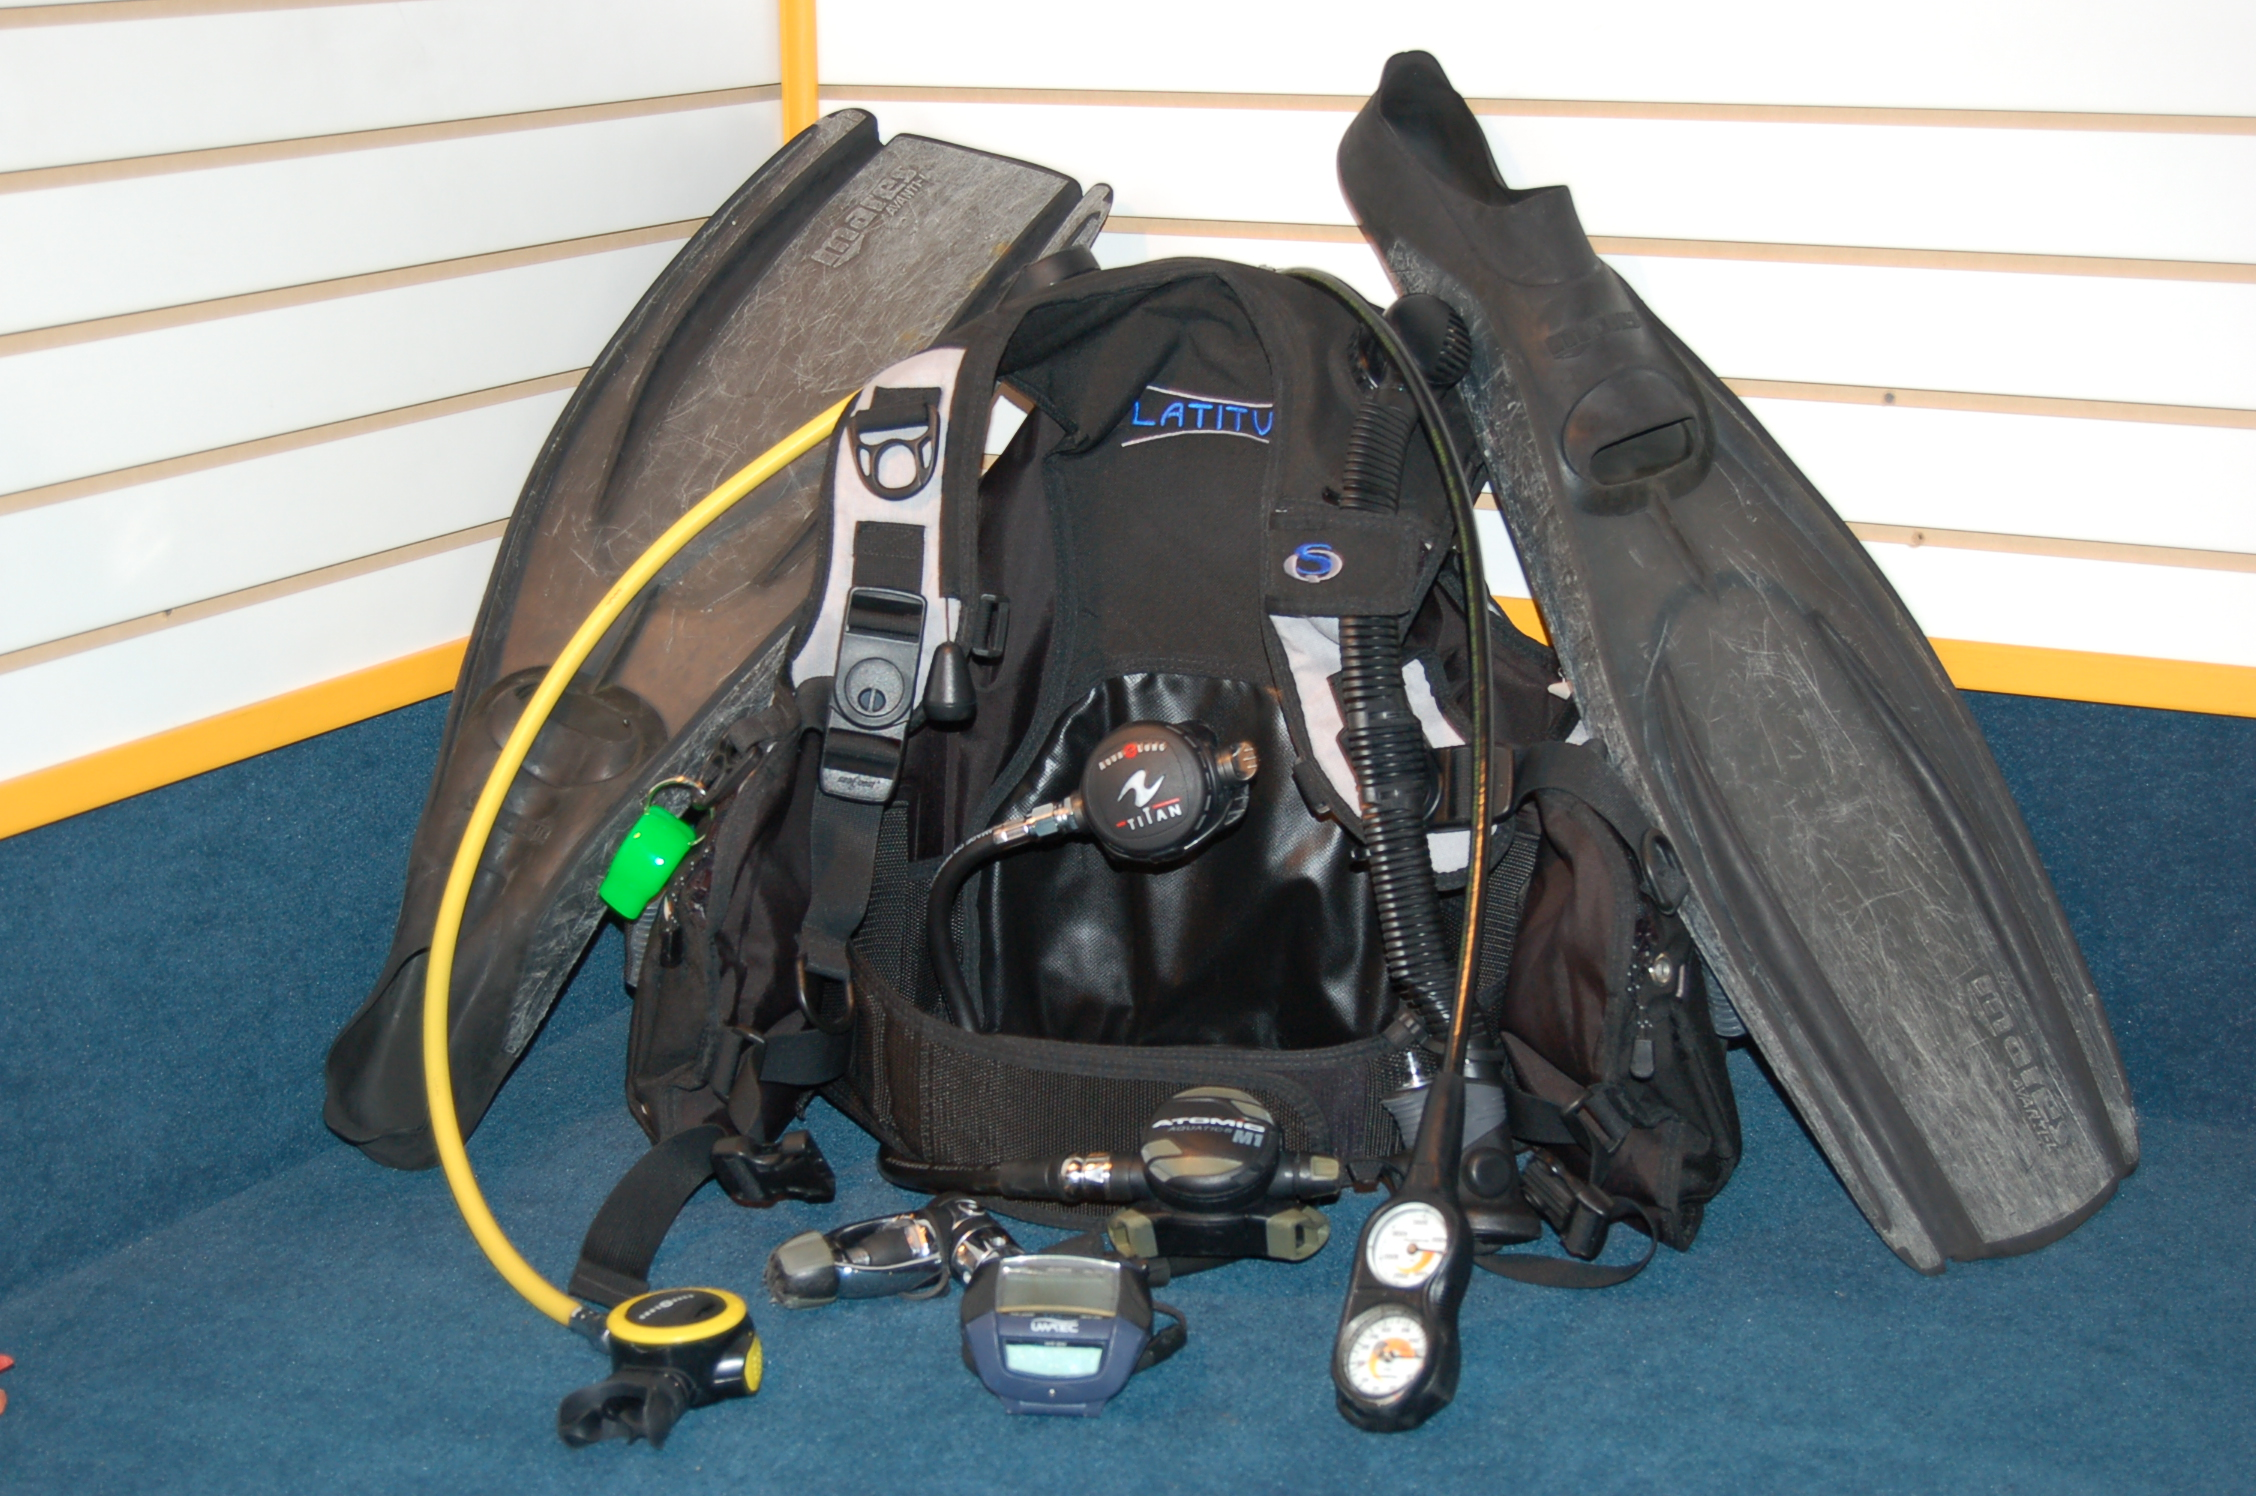 Used scuba gear one world dive travel blog for Scuba dive equipment